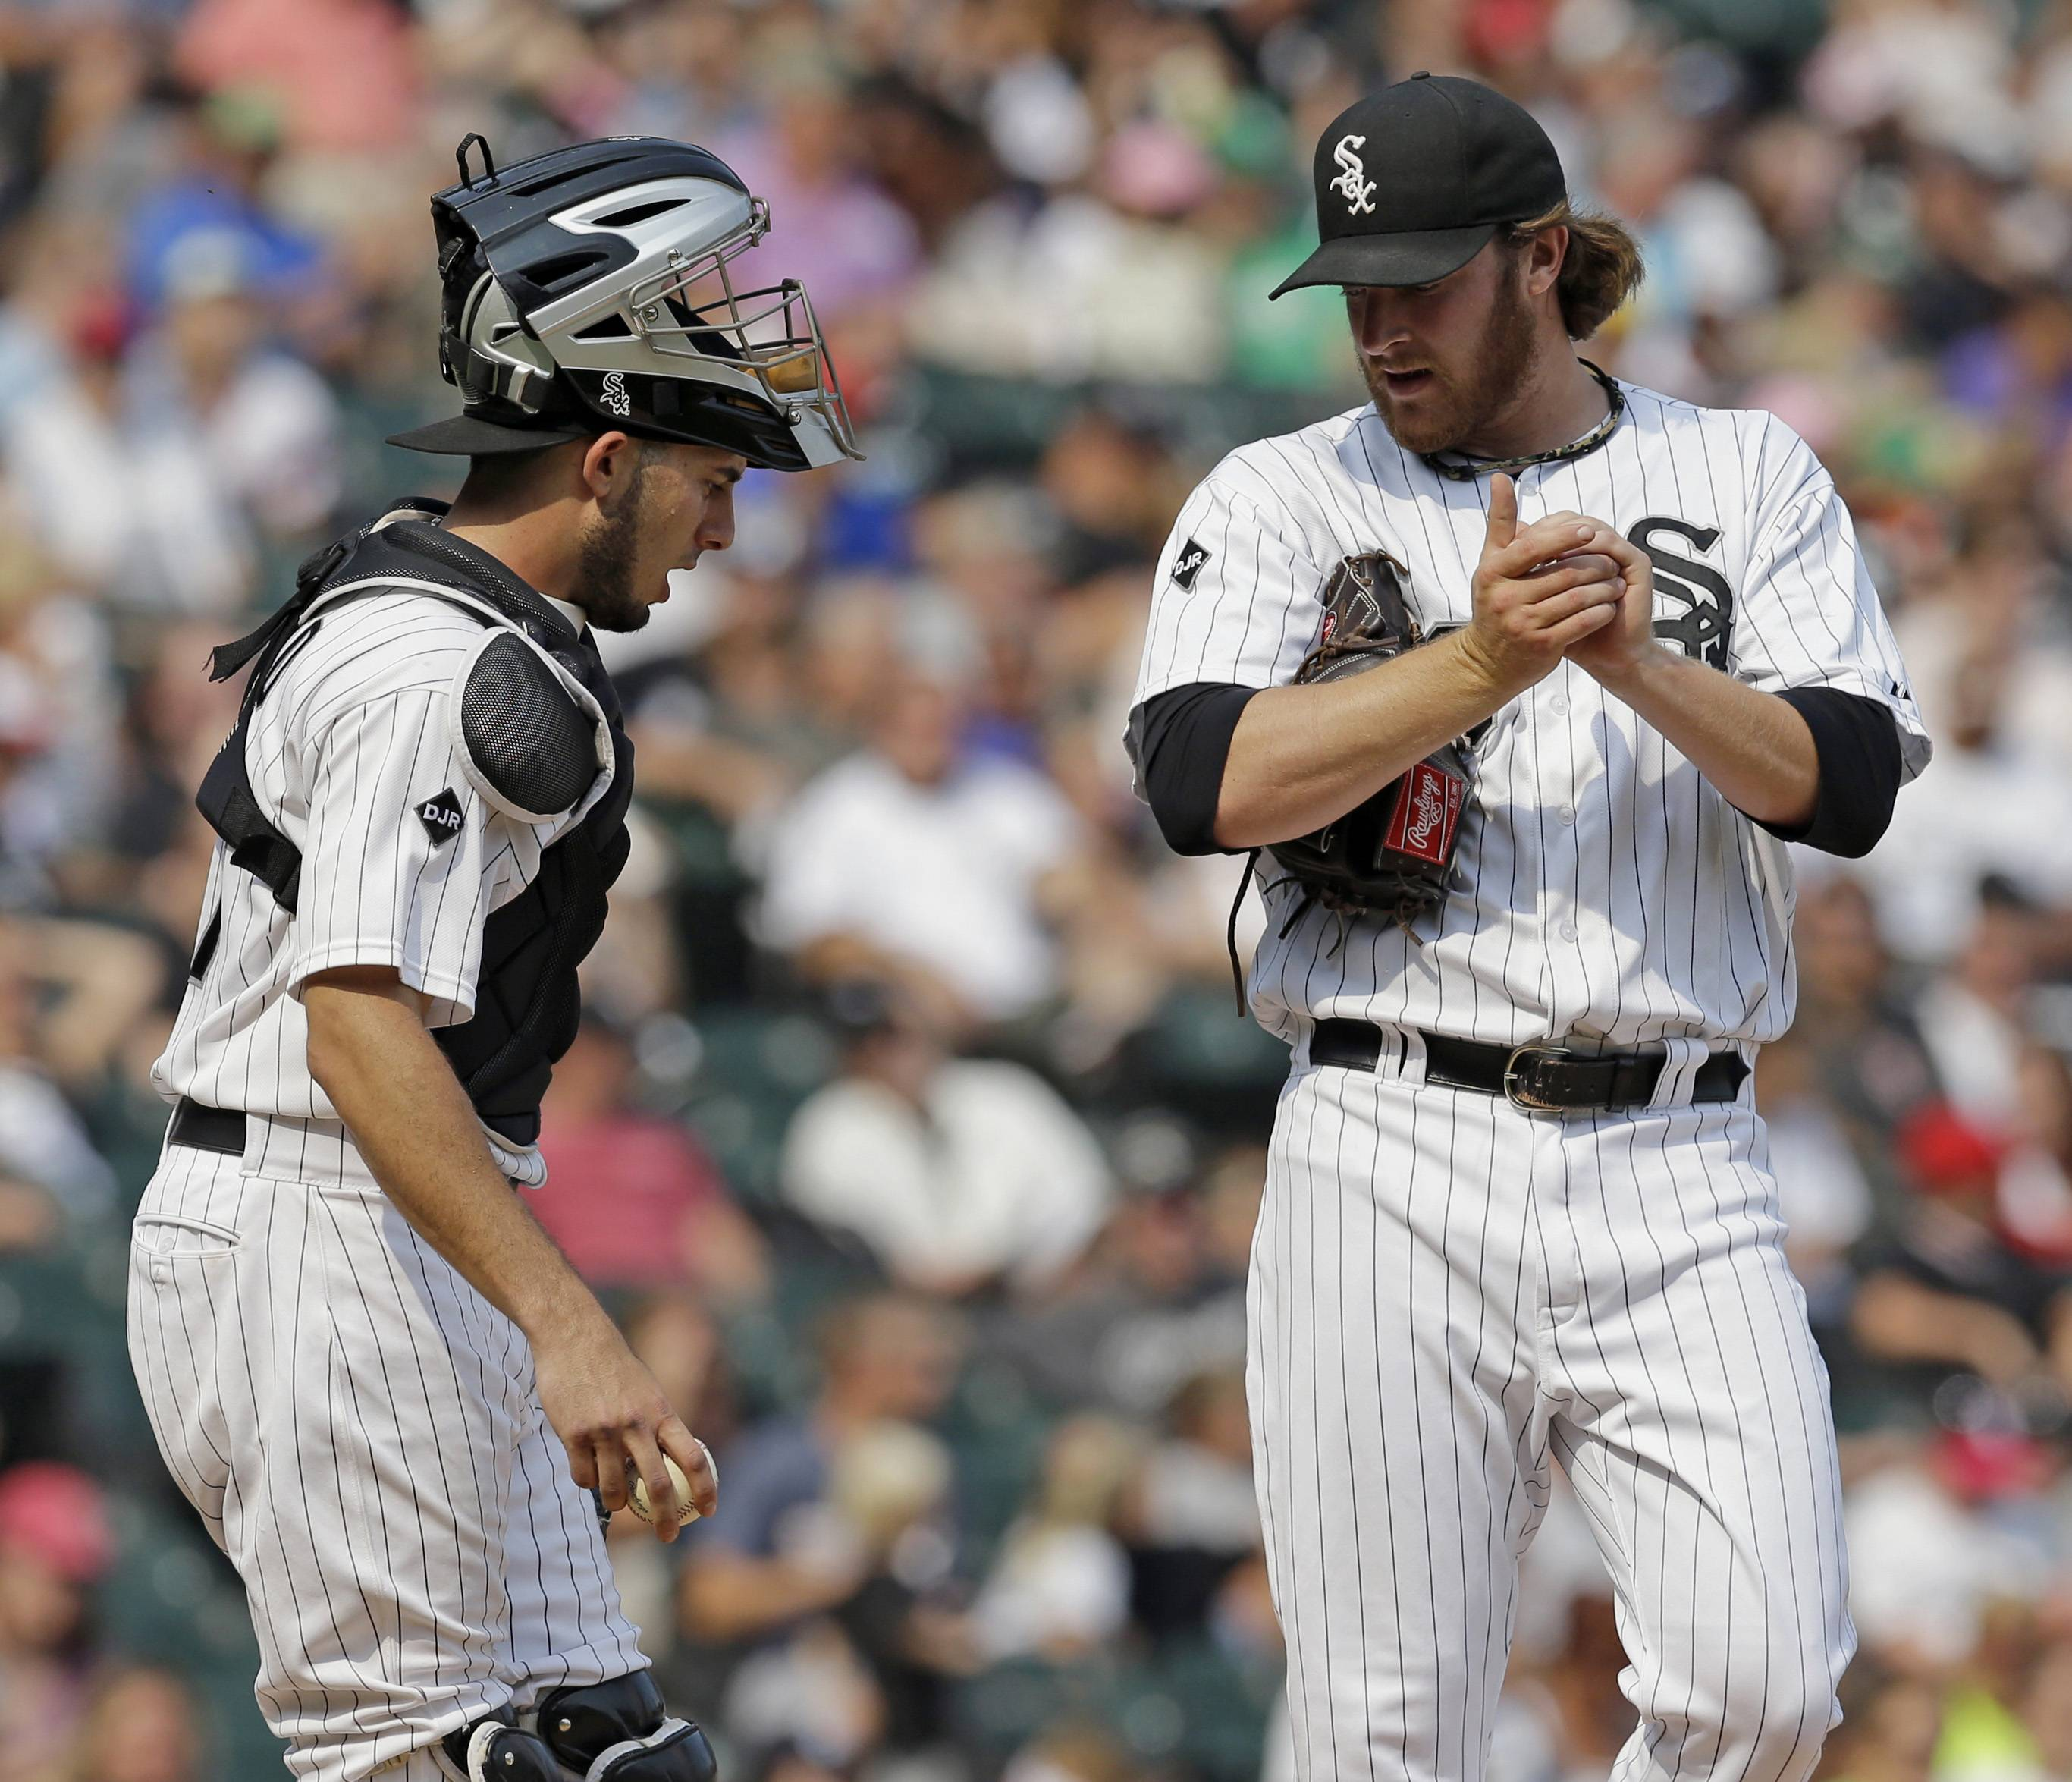 White Sox catcher Adrian Nieto talks to relief pitcher Daniel Webb during the seventh inning, when the Astros scored 4 runs after the Sox had finally battled back to tied the game at 7-7.